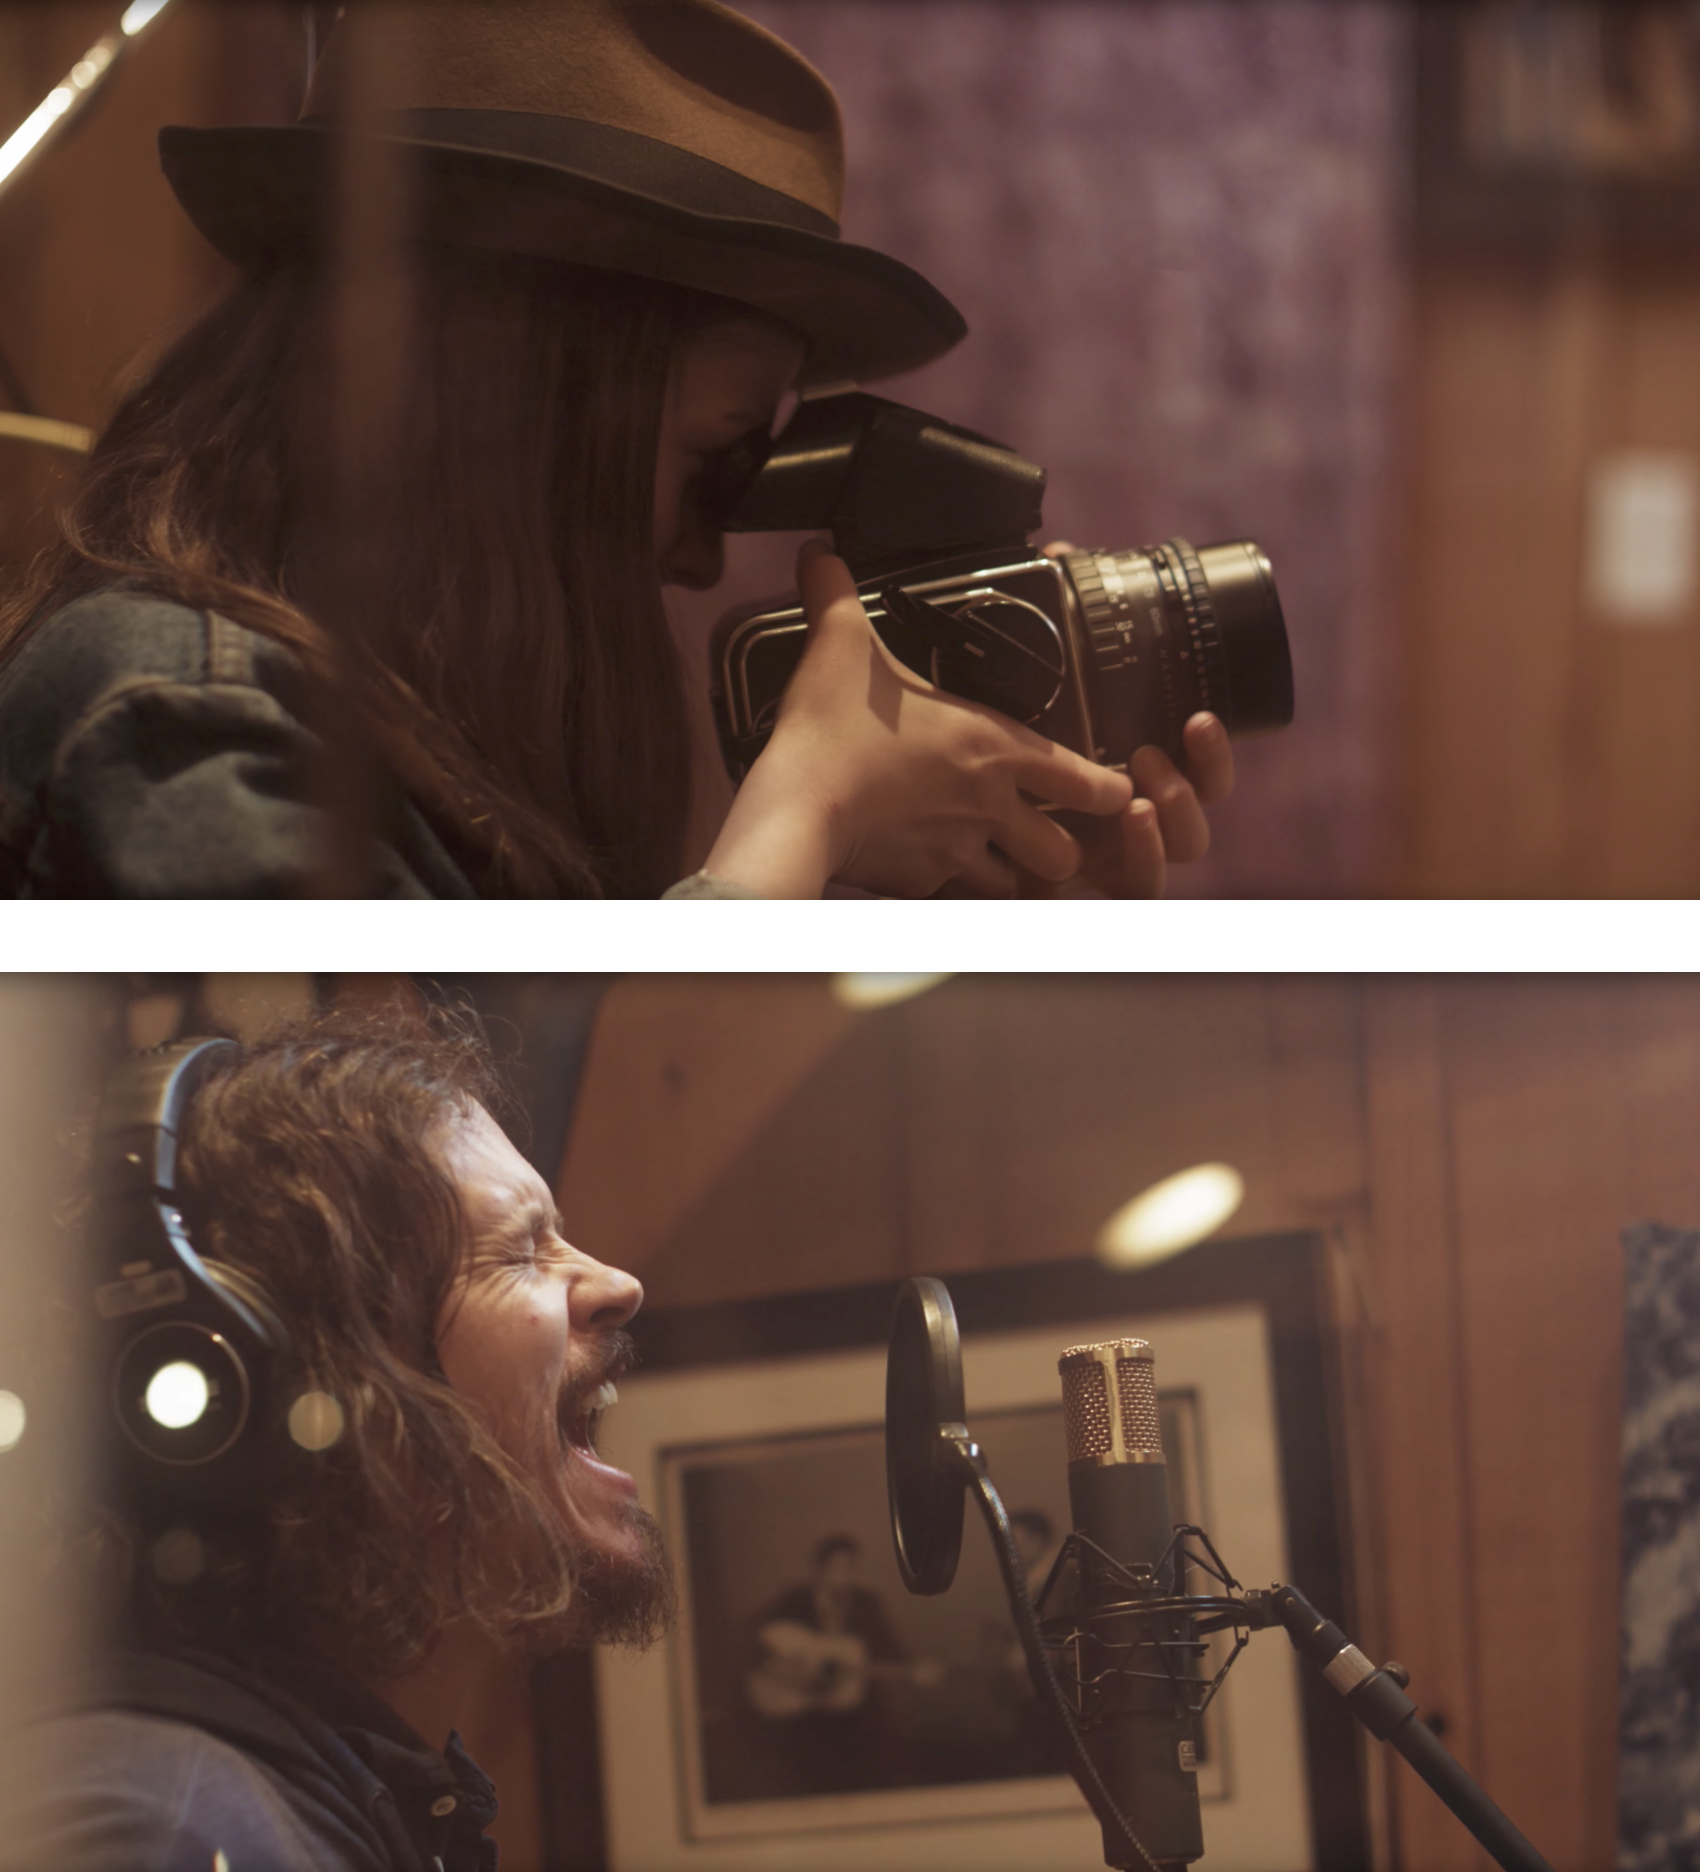 TOP: Laura photographing at Cash Cabin | BOTTOM: John Paul White recording at Cash Cabin. Stills courtesy of Brendan Leahy and Cinestill FIlm